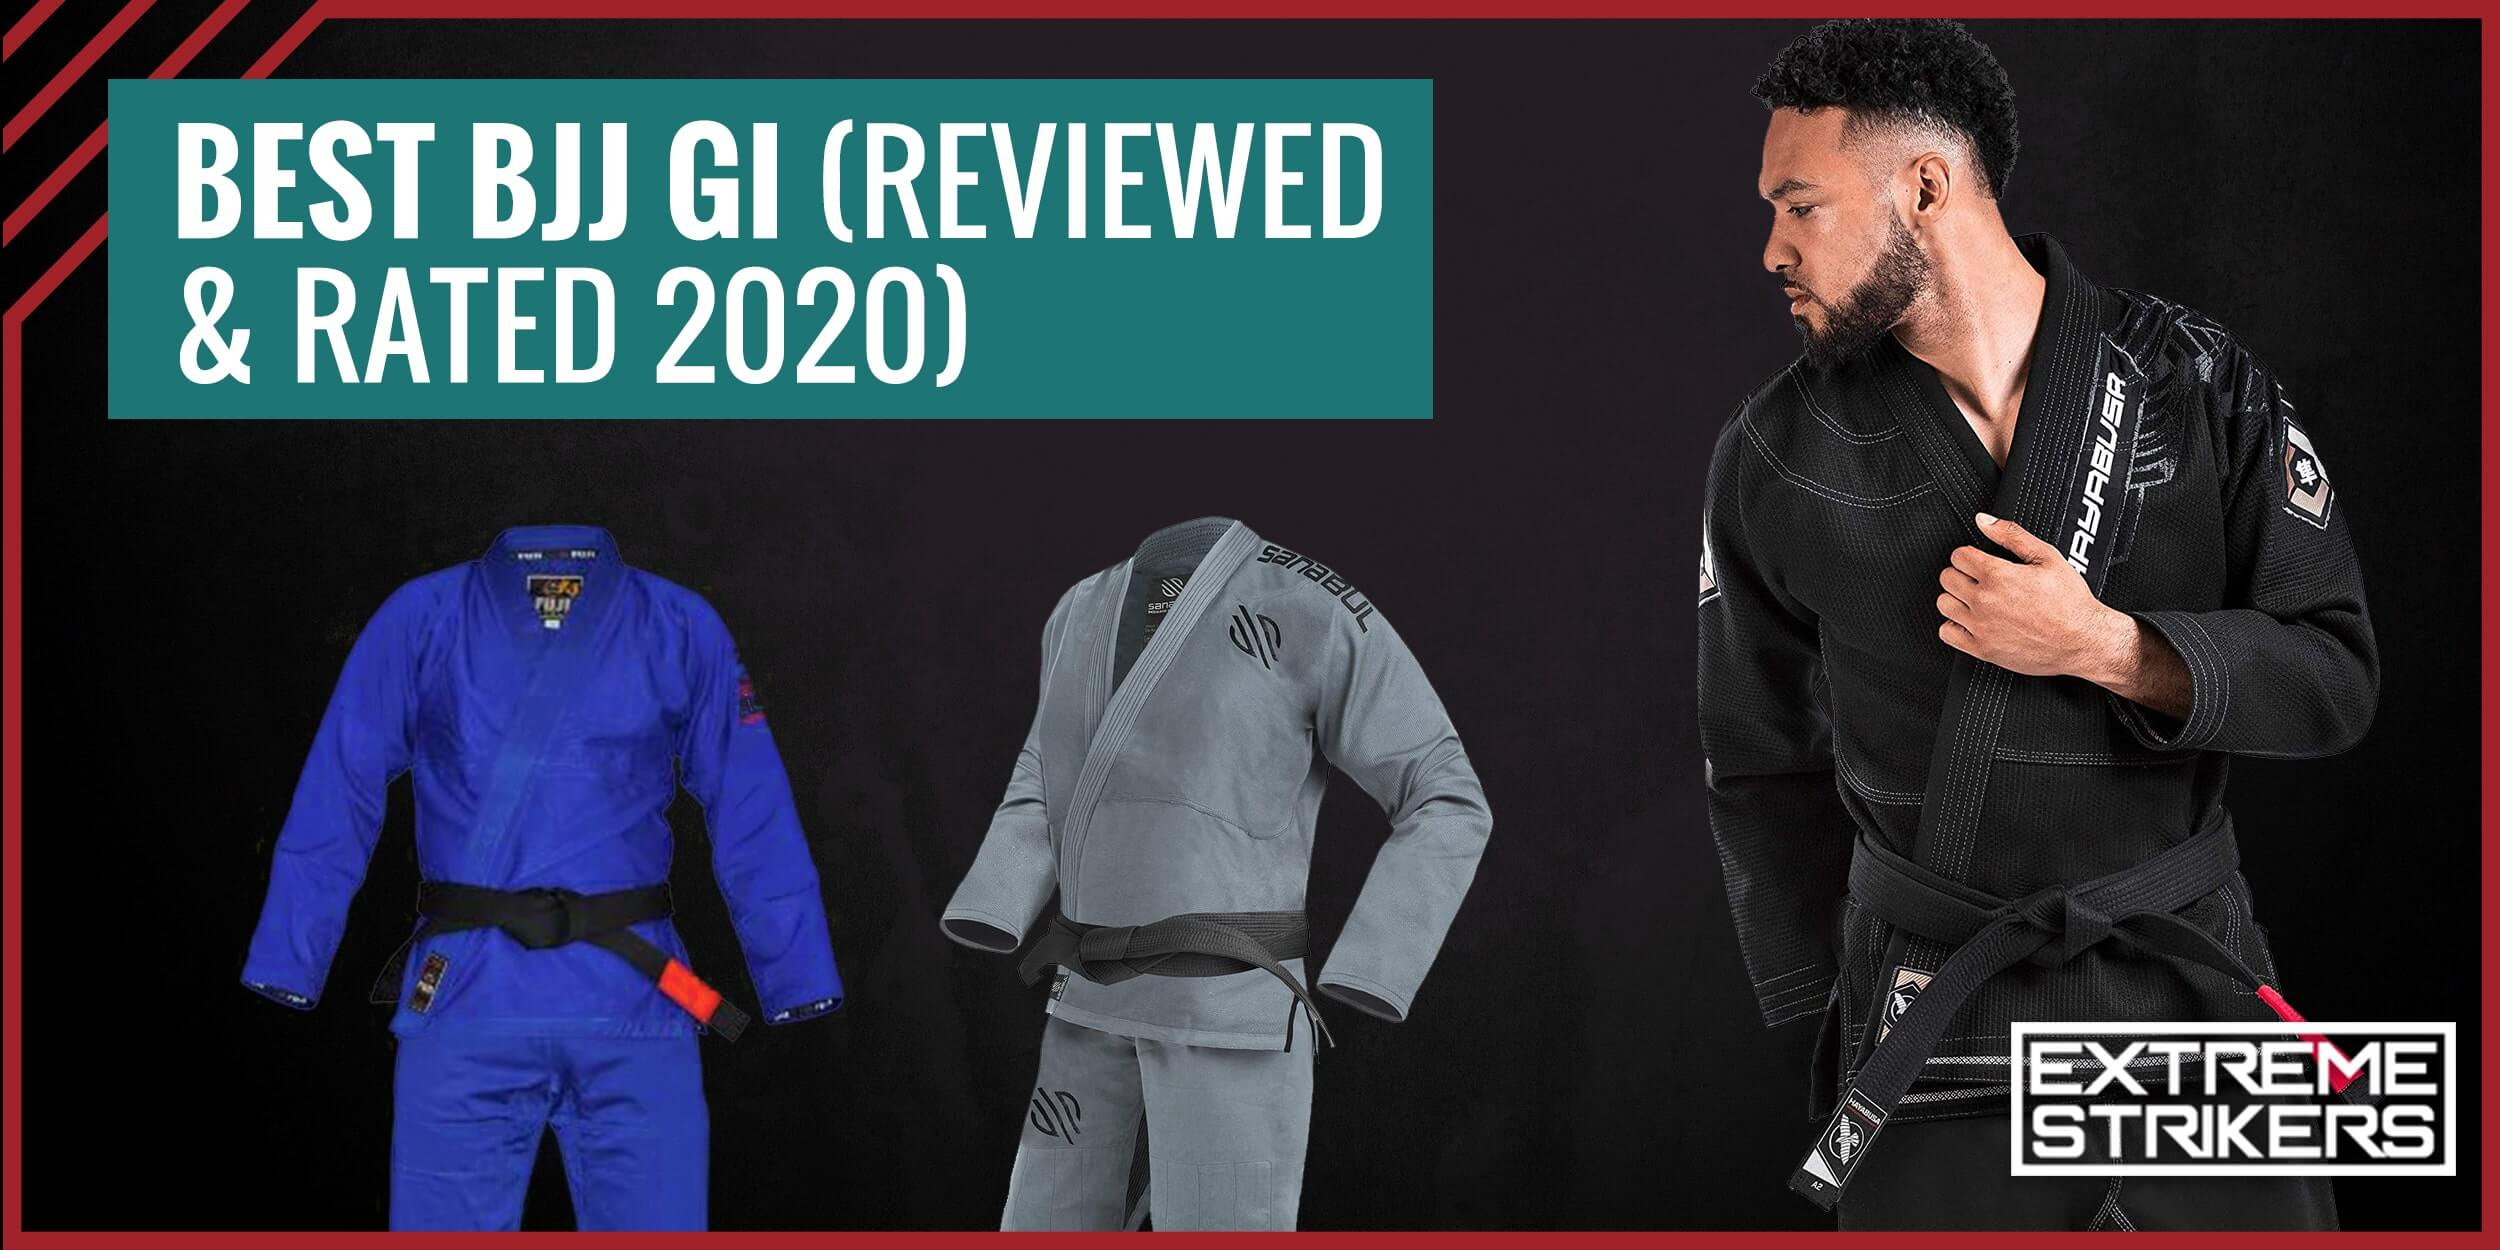 Best Bjj Gi (REVIEWED & RATED 2021)